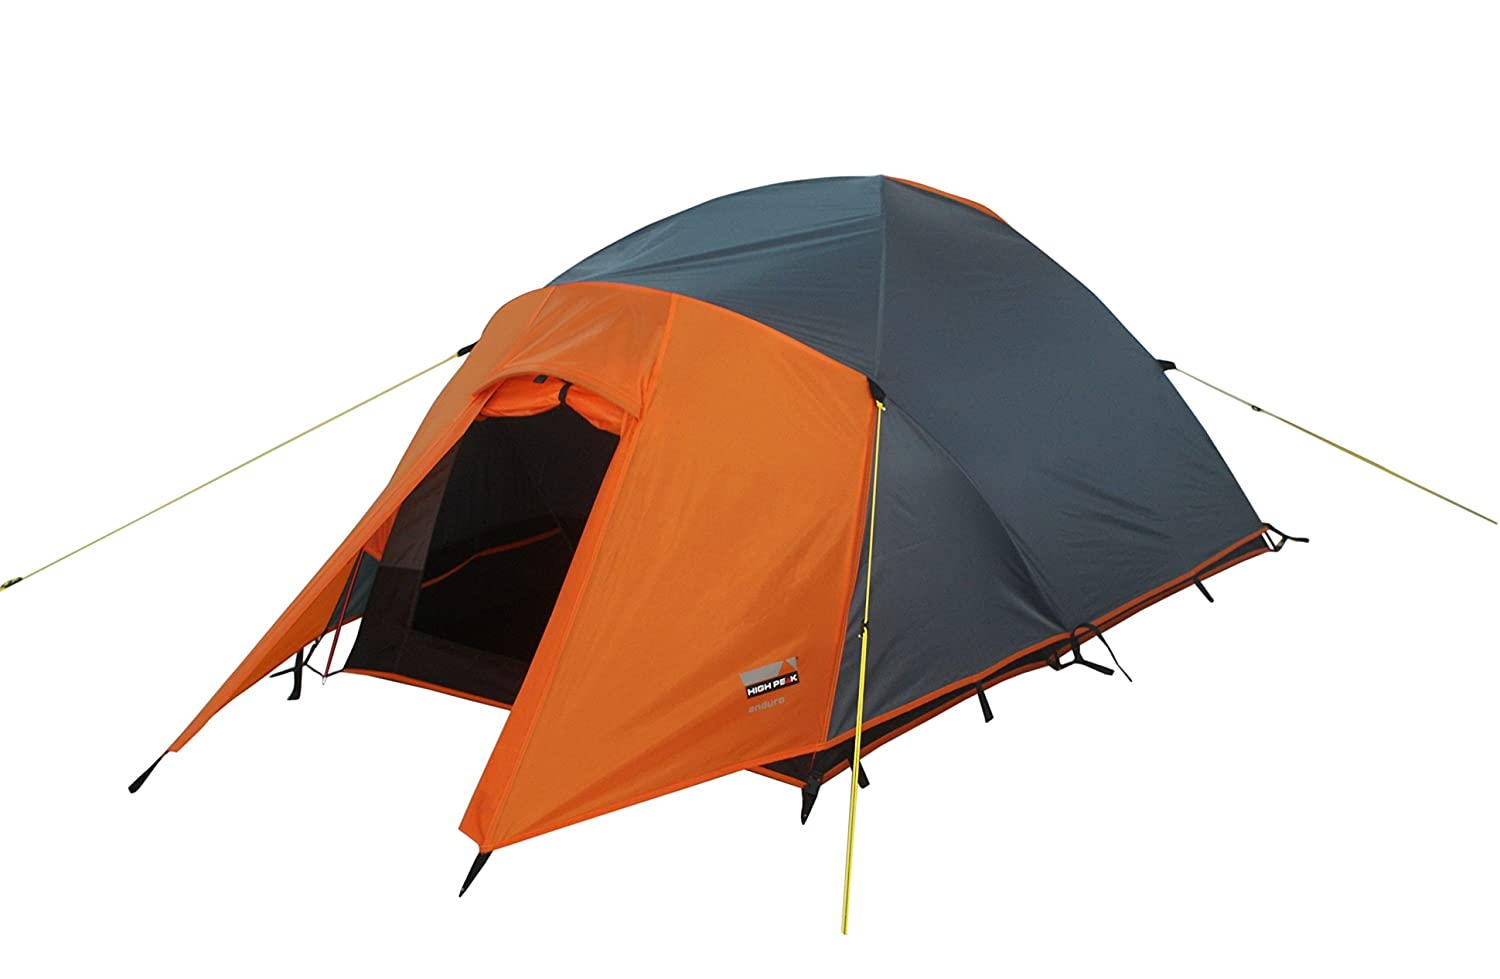 10 Best 4 Season Tents For Backpacking For 2018/2019 ...